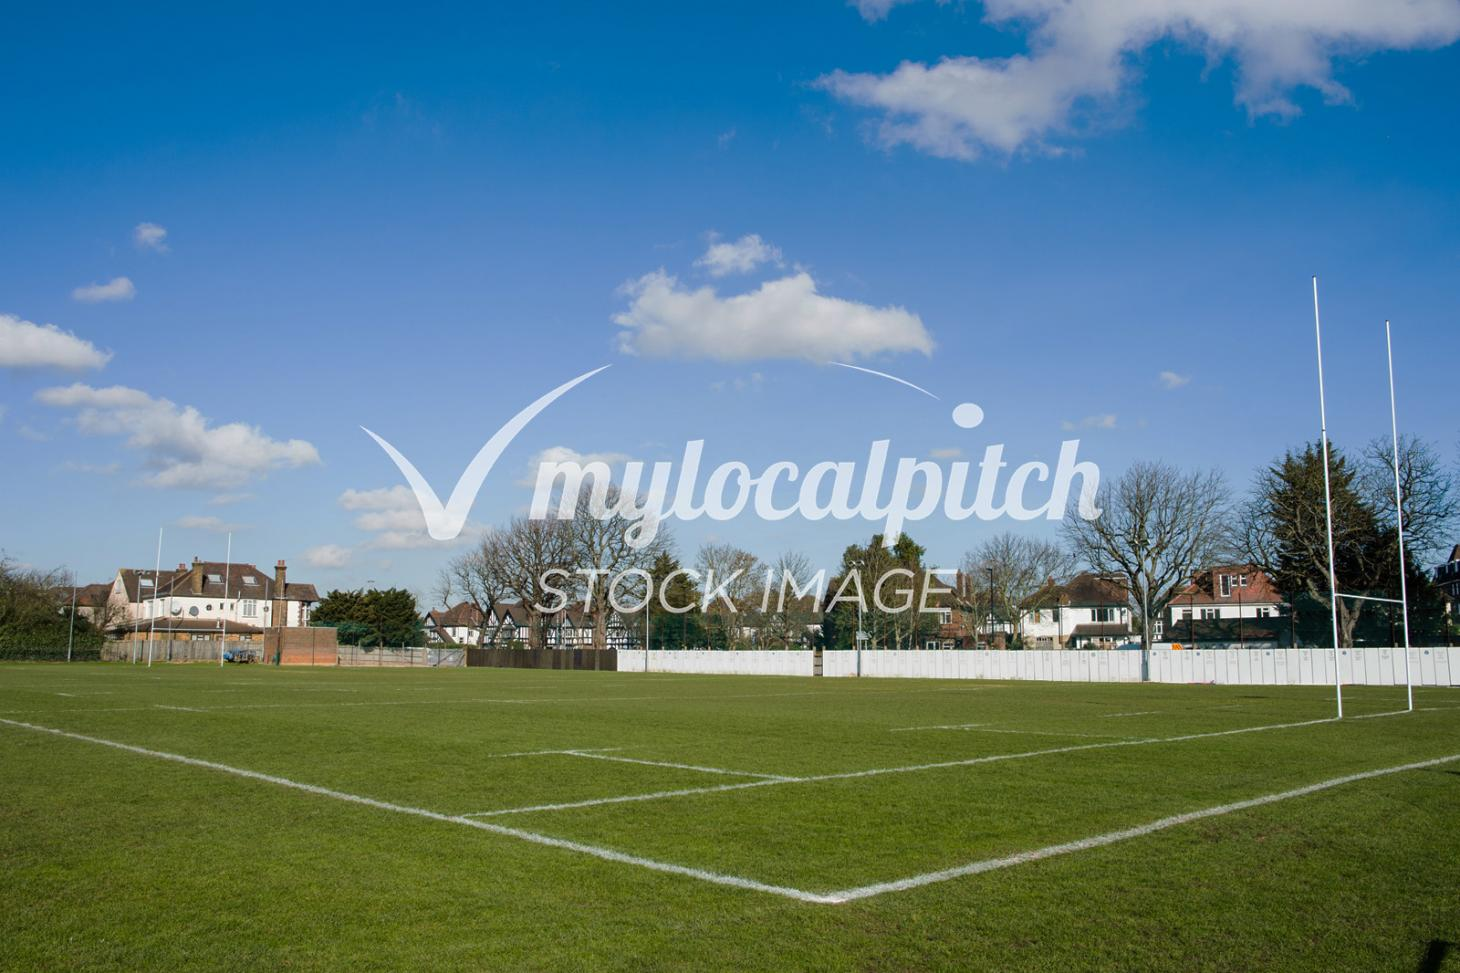 Dulwich Sports Ground Union | Grass rugby pitch